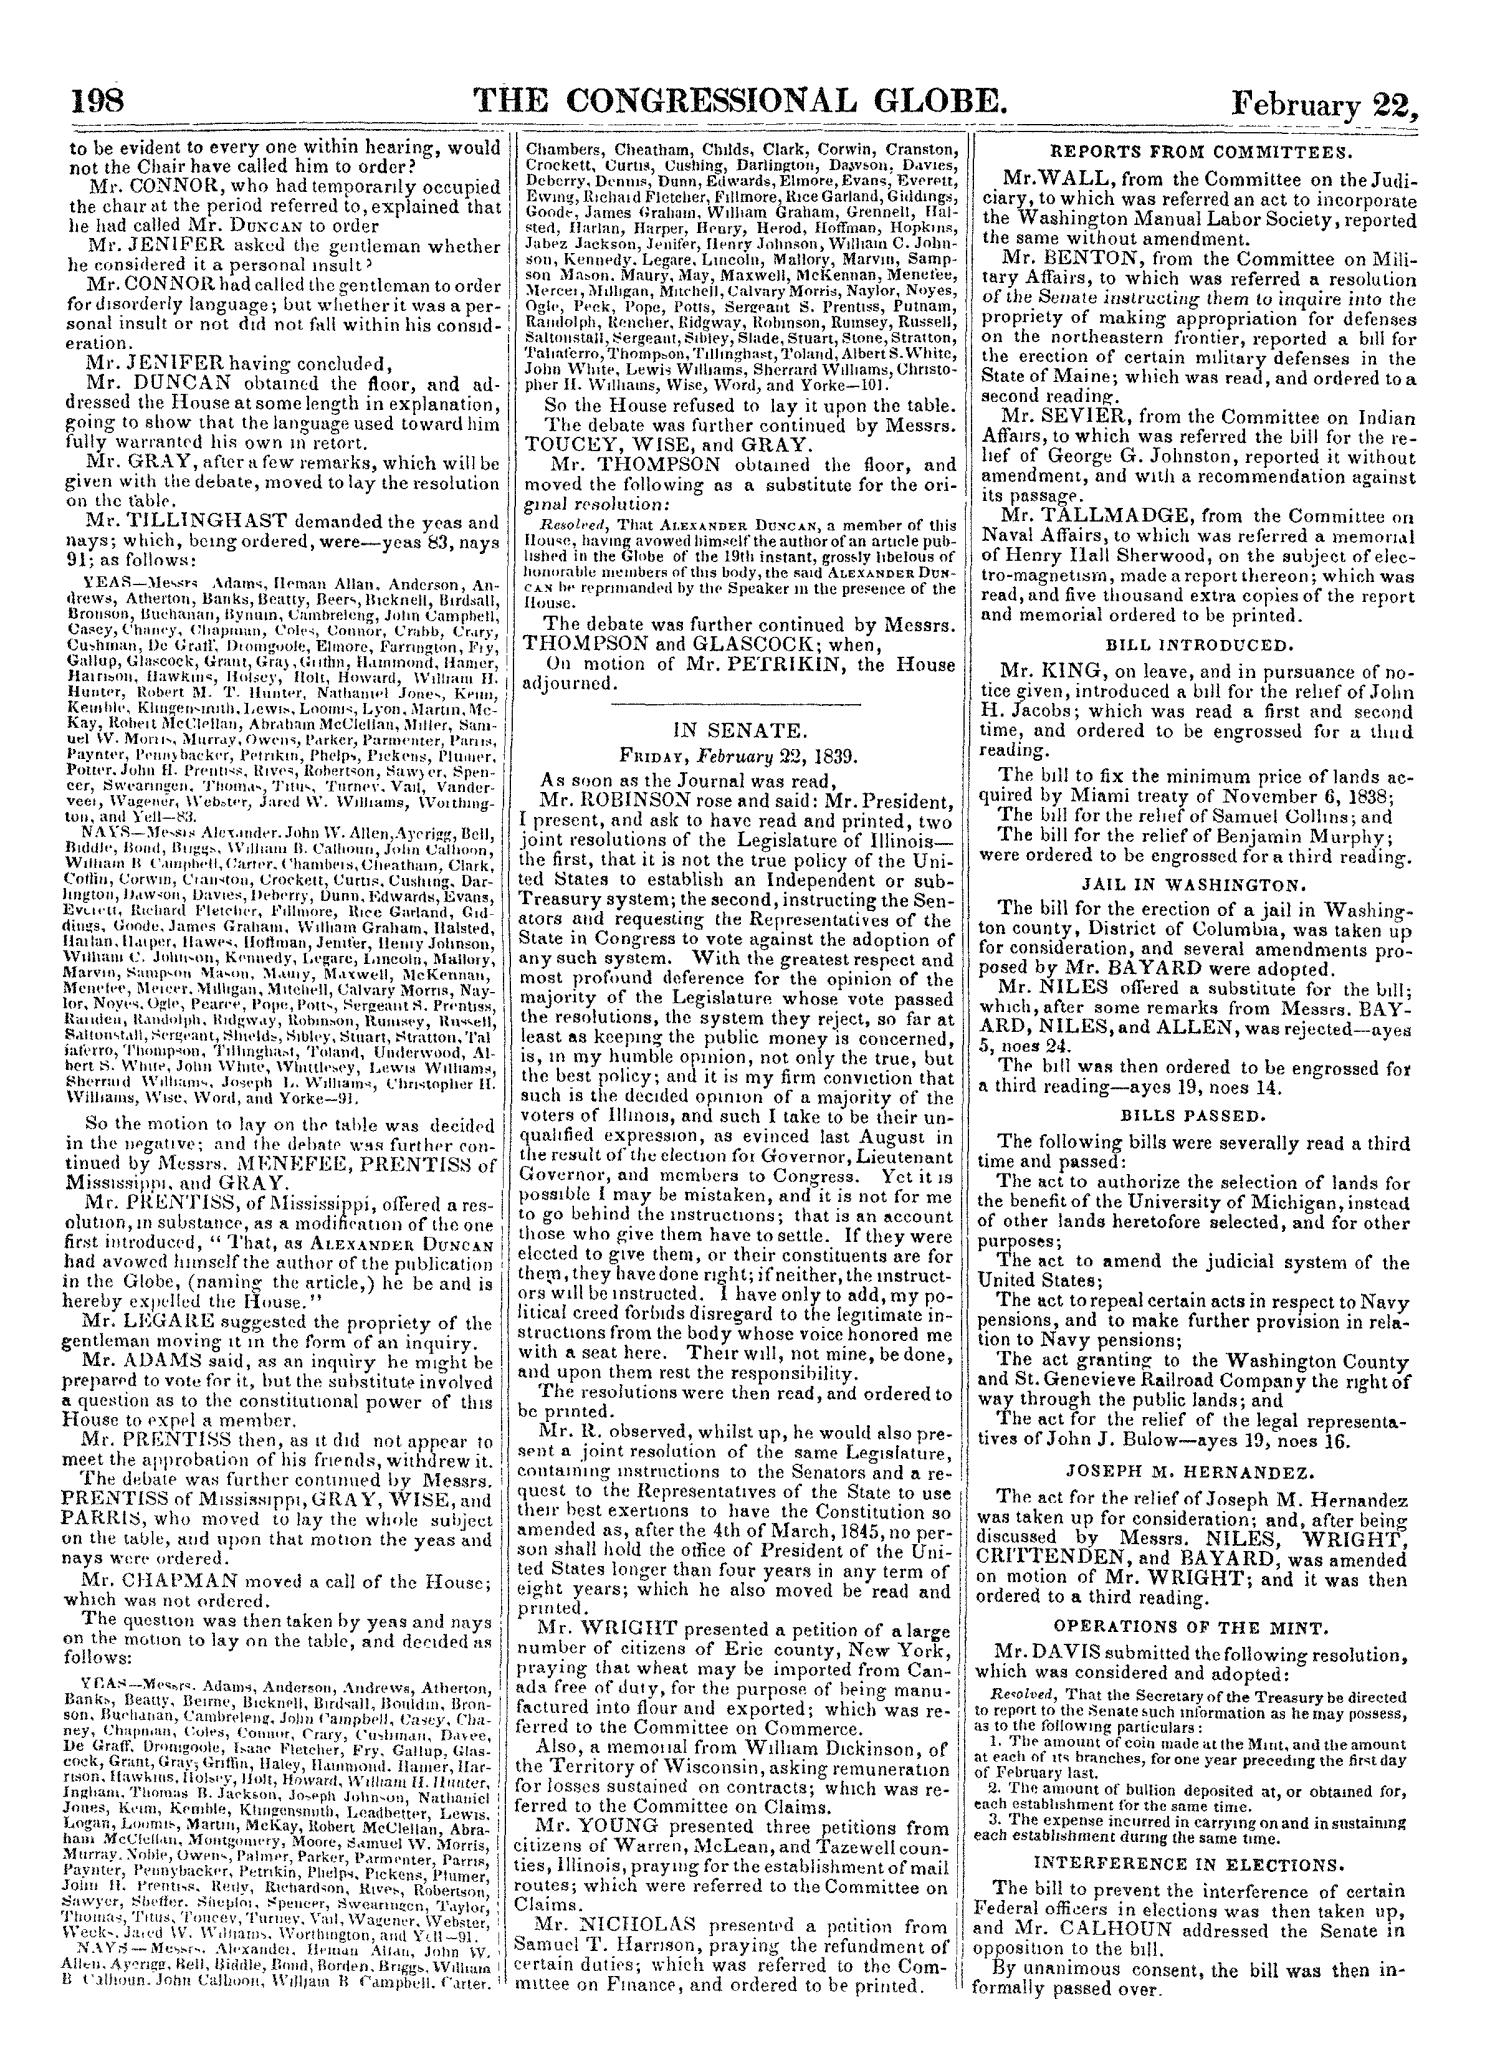 The Congressional Globe, Volume 7: Twenty-Fifth Congress, Third Session                                                                                                      [Sequence #]: 217 of 687